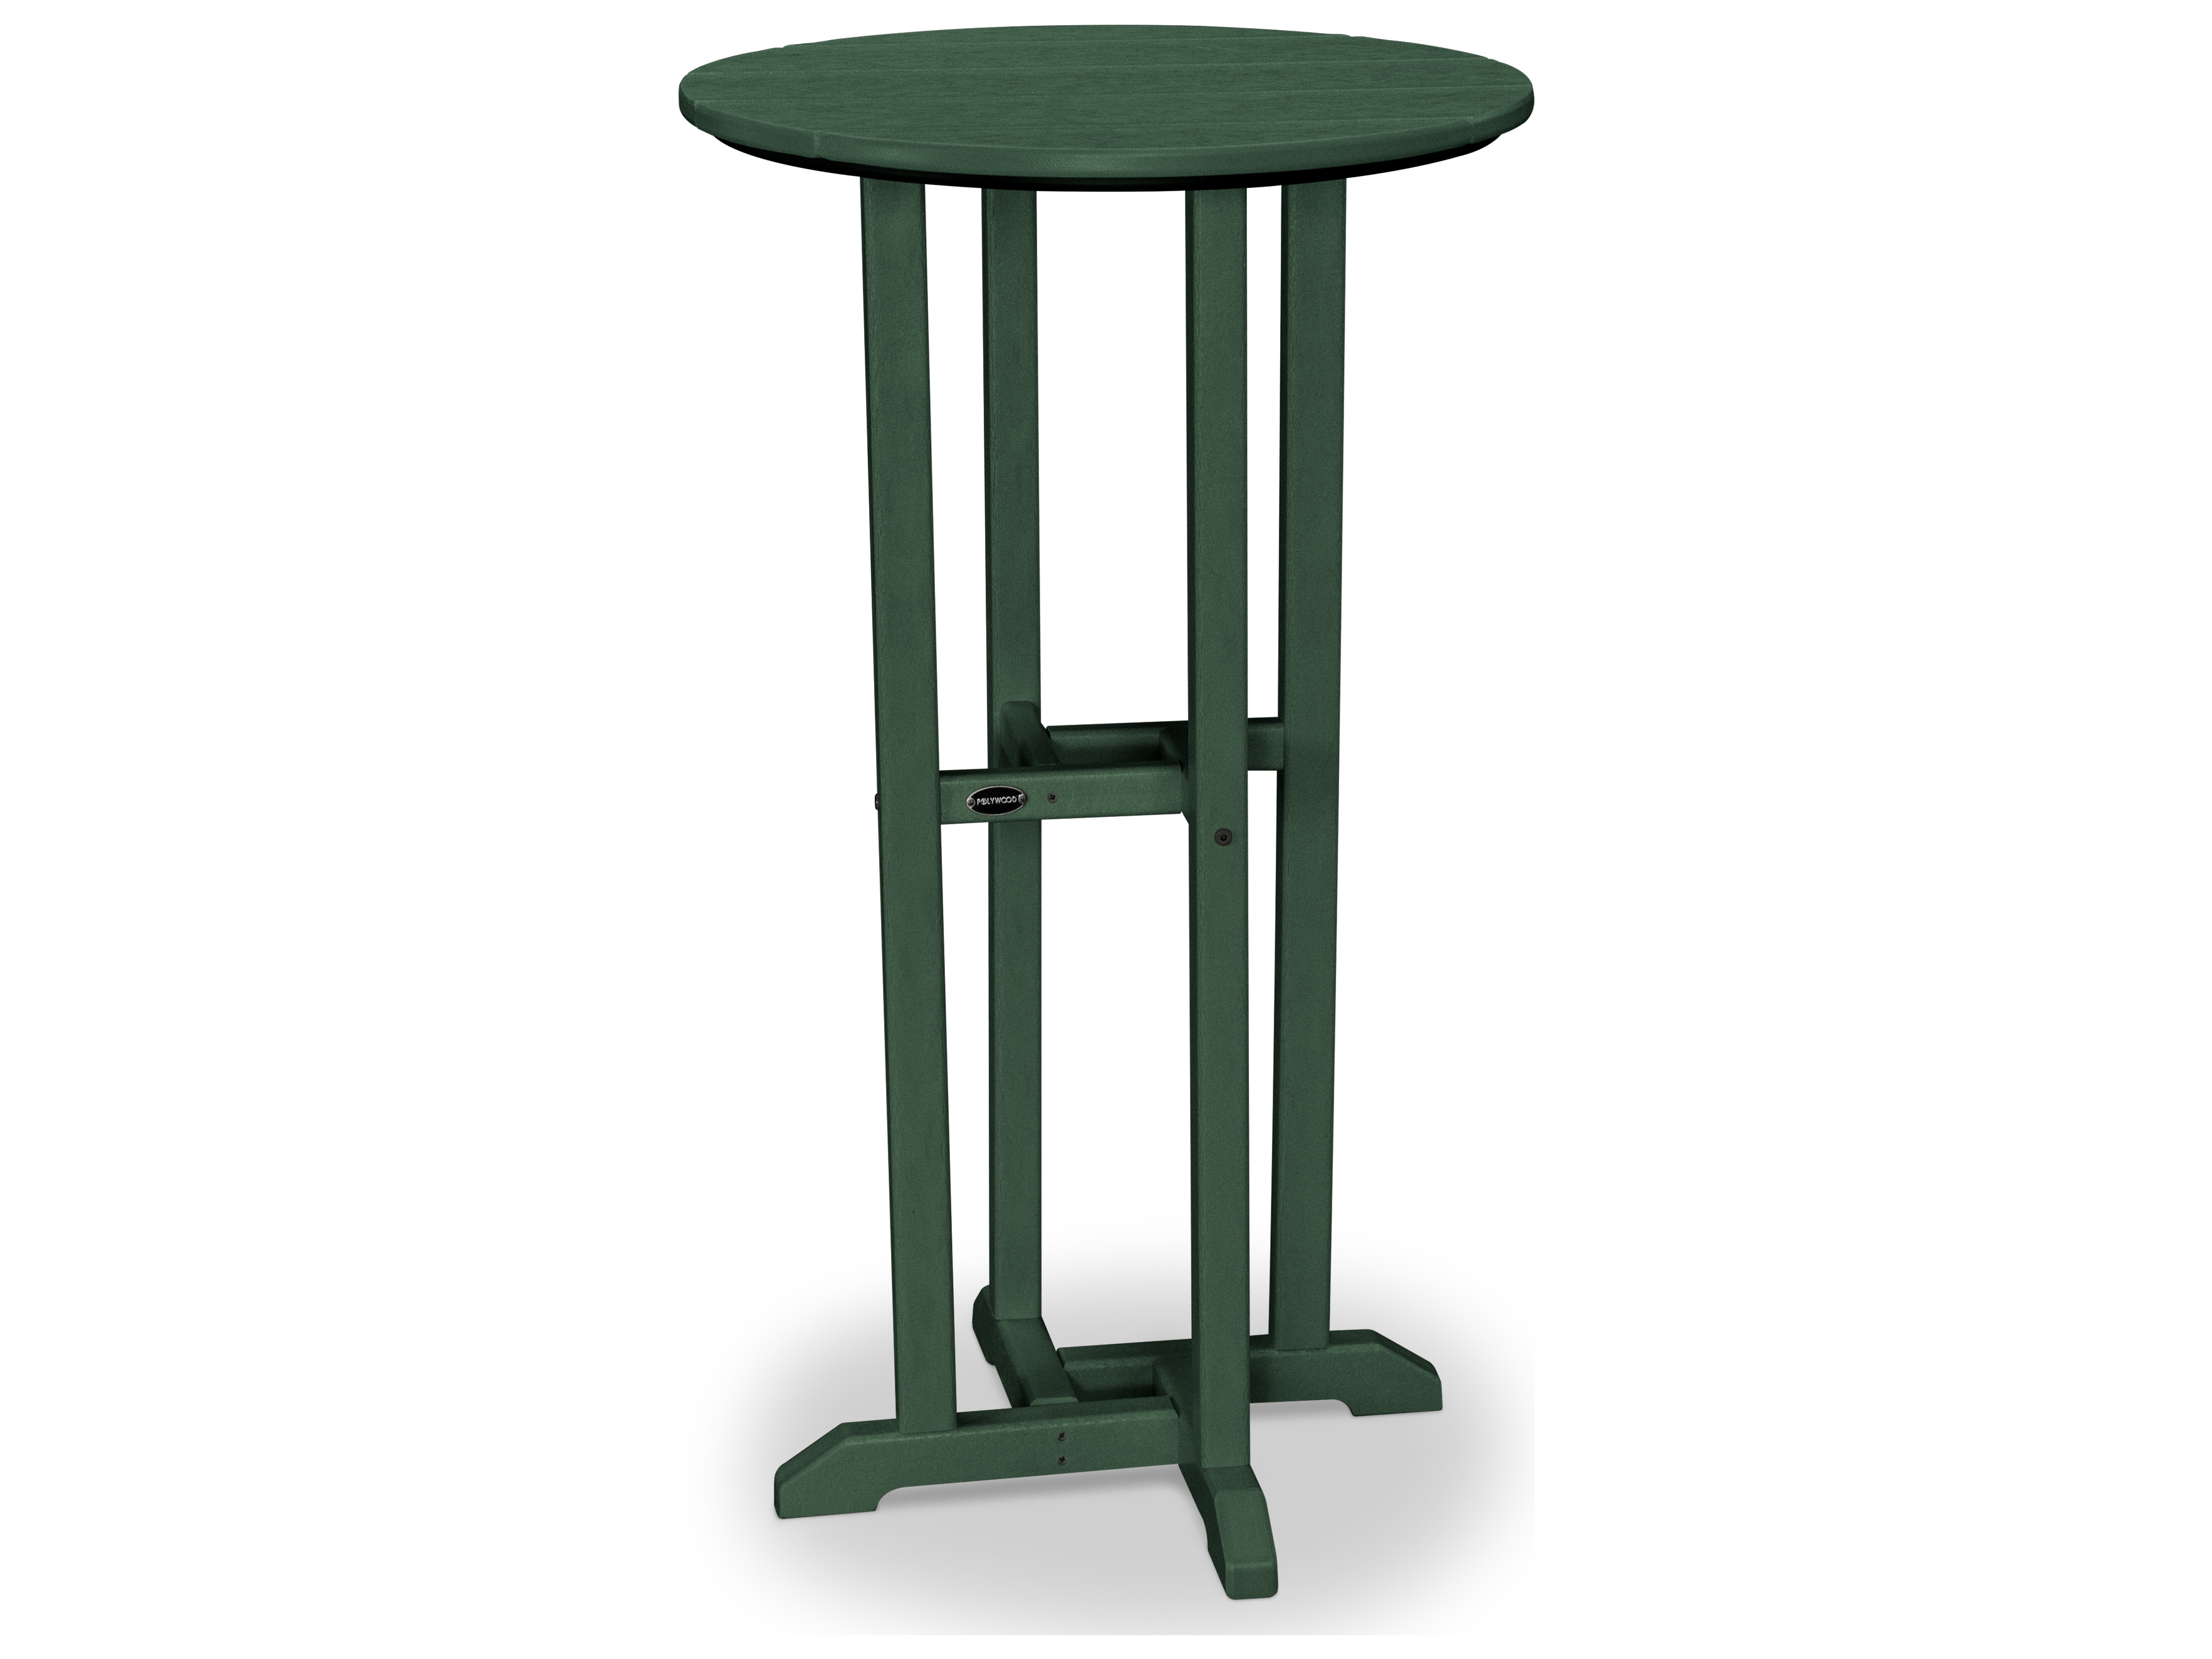 polywood traditional recycled plastic 24 round bar height table rbt124. Black Bedroom Furniture Sets. Home Design Ideas